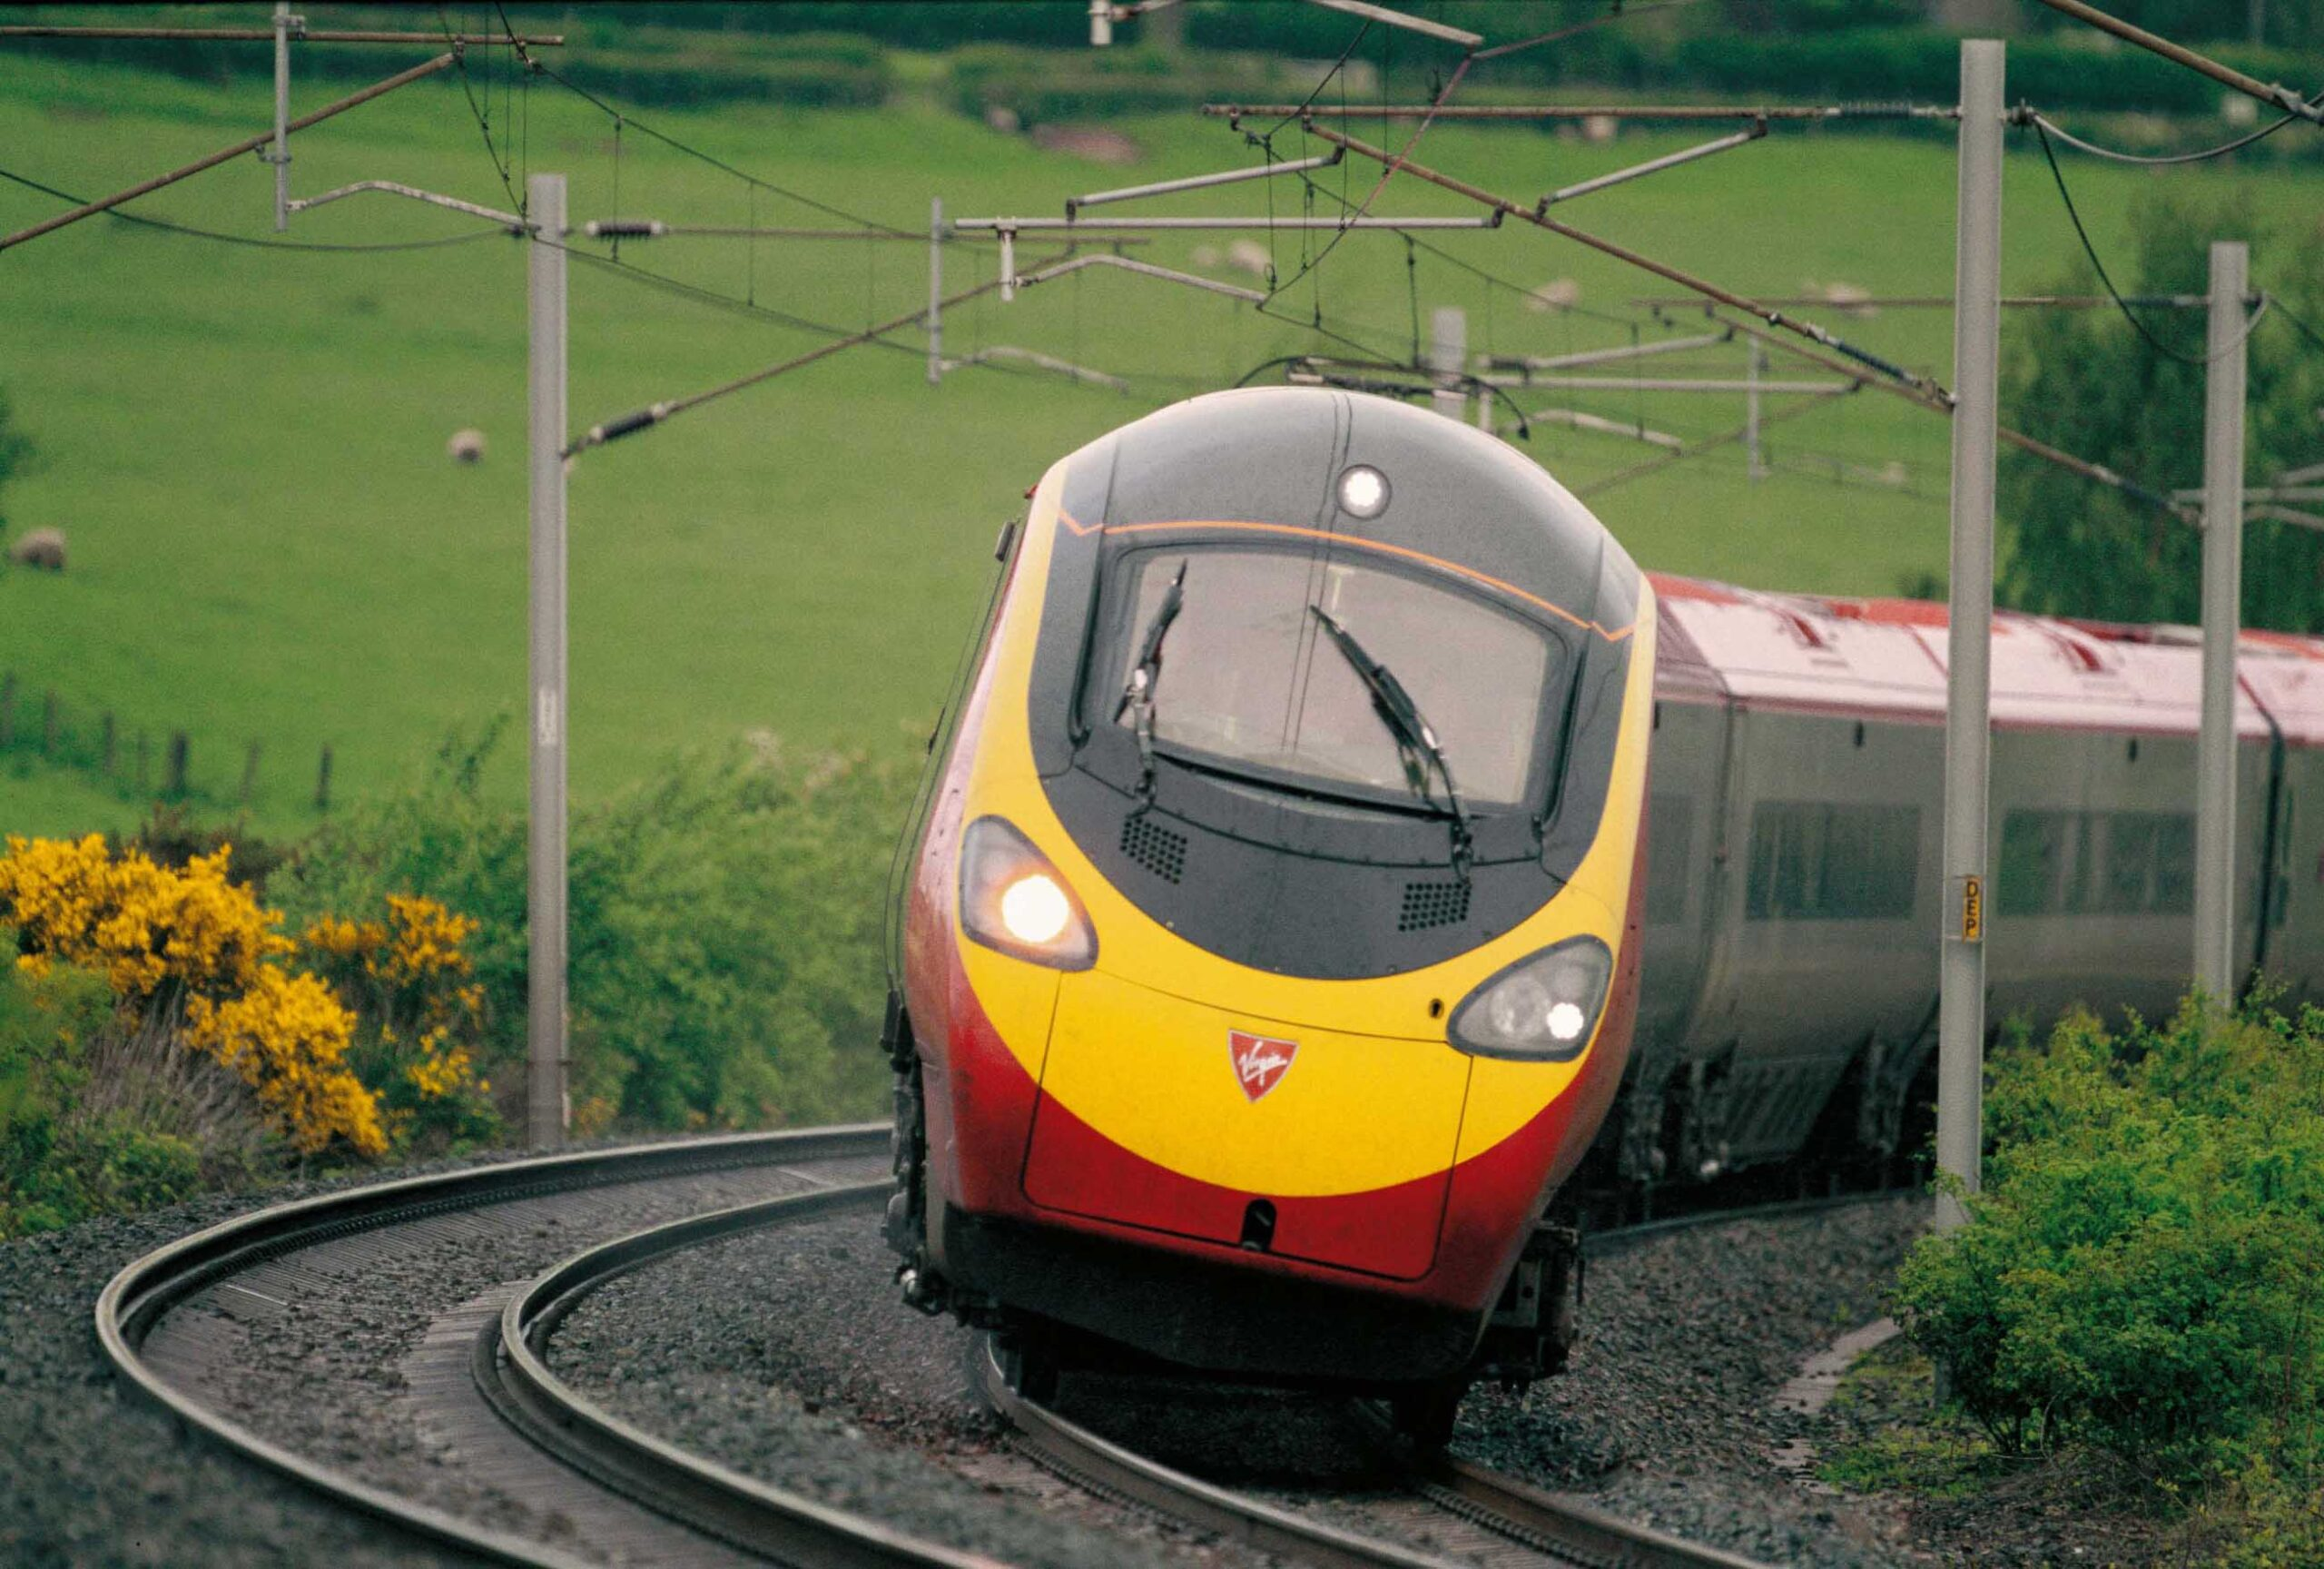 Virgin & Stagecoach join forces with SNCF for West Coast bid